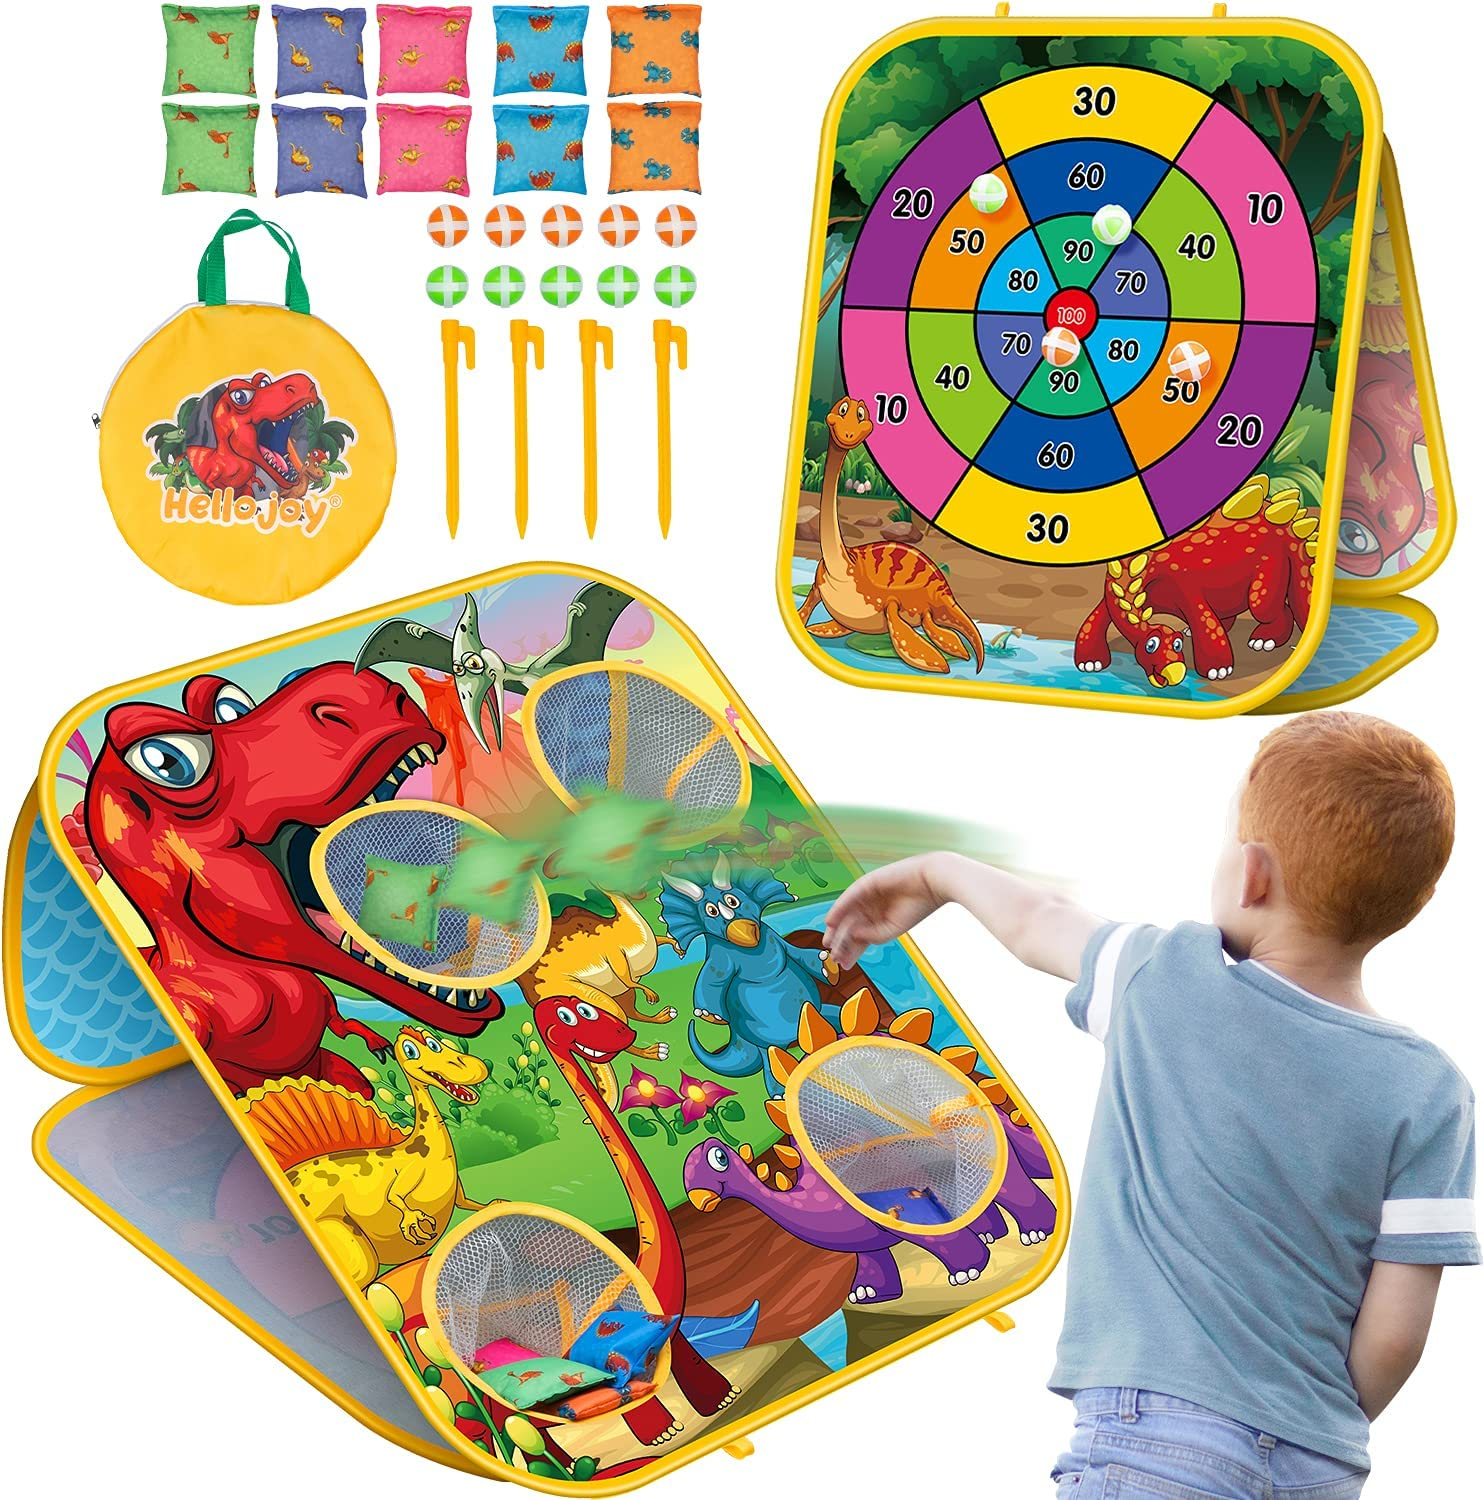 Bean Bag Toss Game Kids Toys Foldable Double-Sided Cornh Popular Save money brand in the world Outdoor